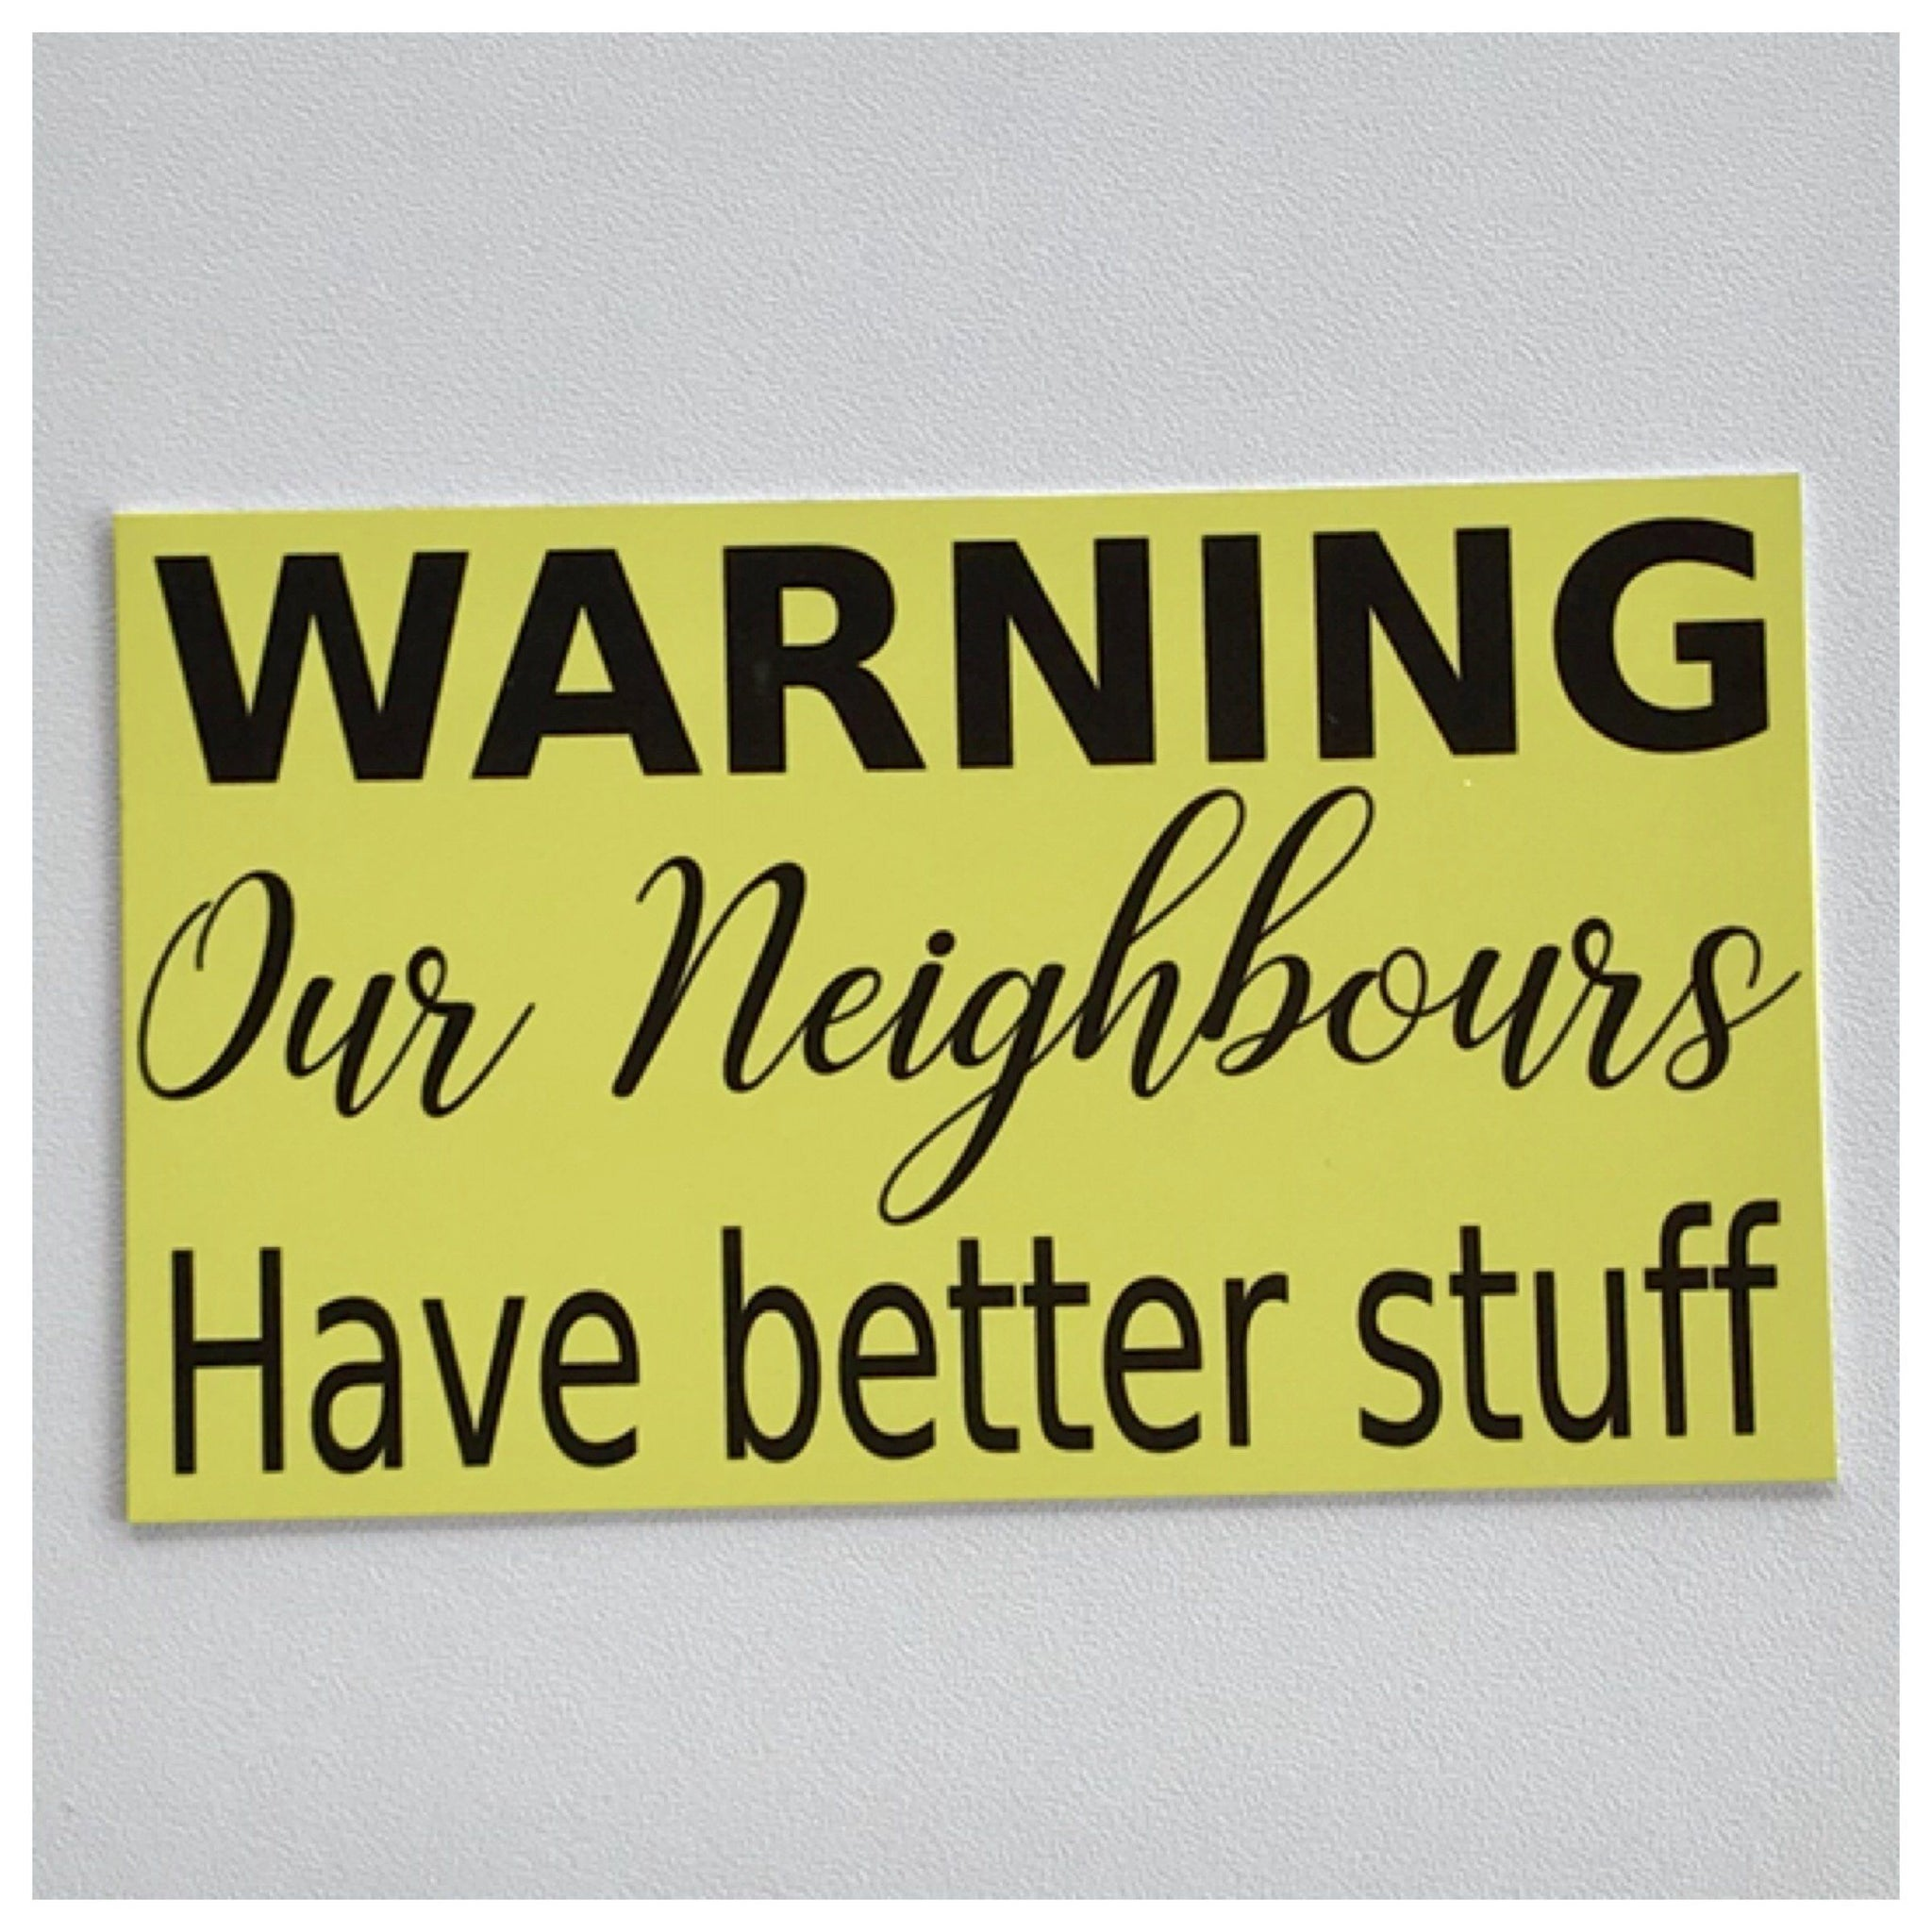 Warning Our Neighbours Have Better Stuff Sign Wall Plaque or Hanging - The Renmy Store